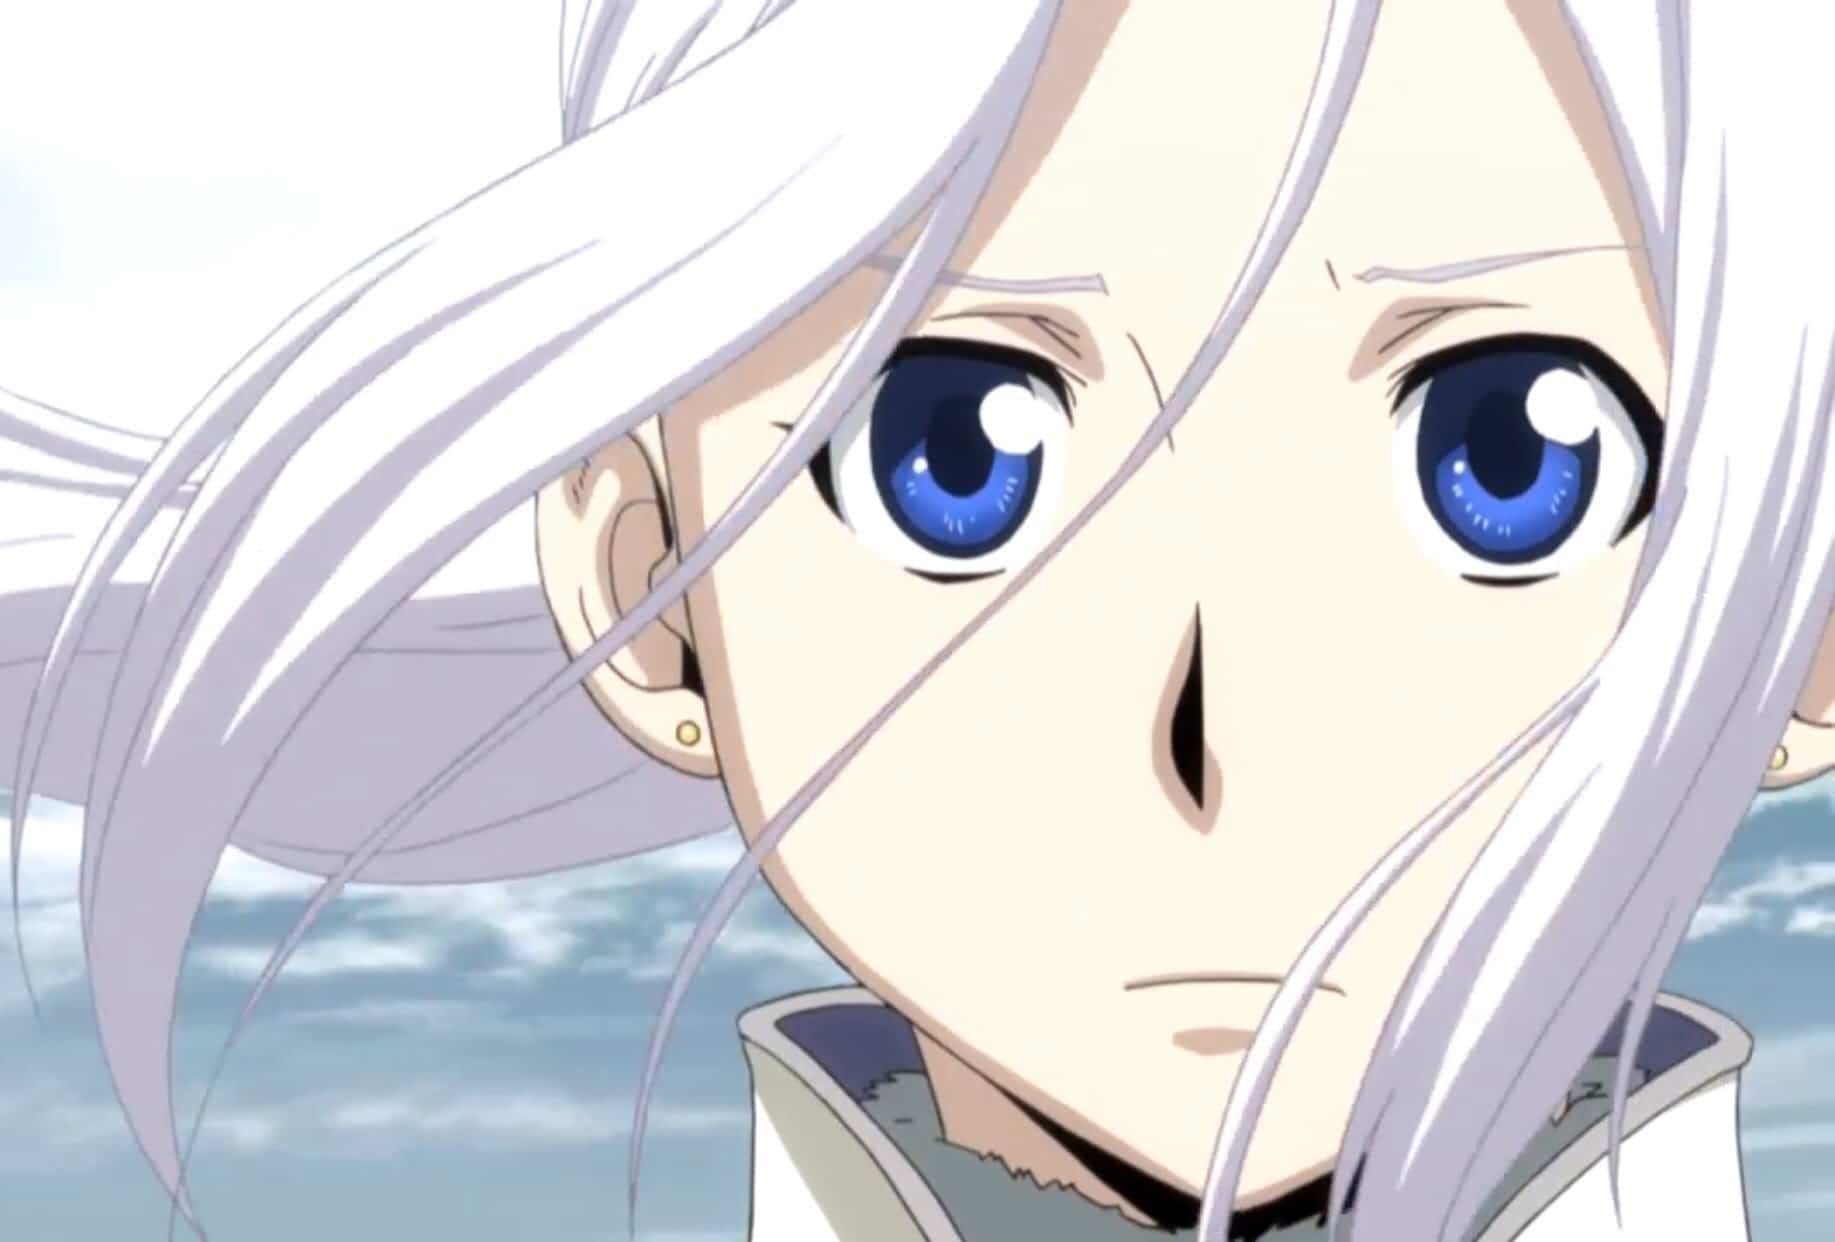 The Heroic Legend of Arslan kurokawa